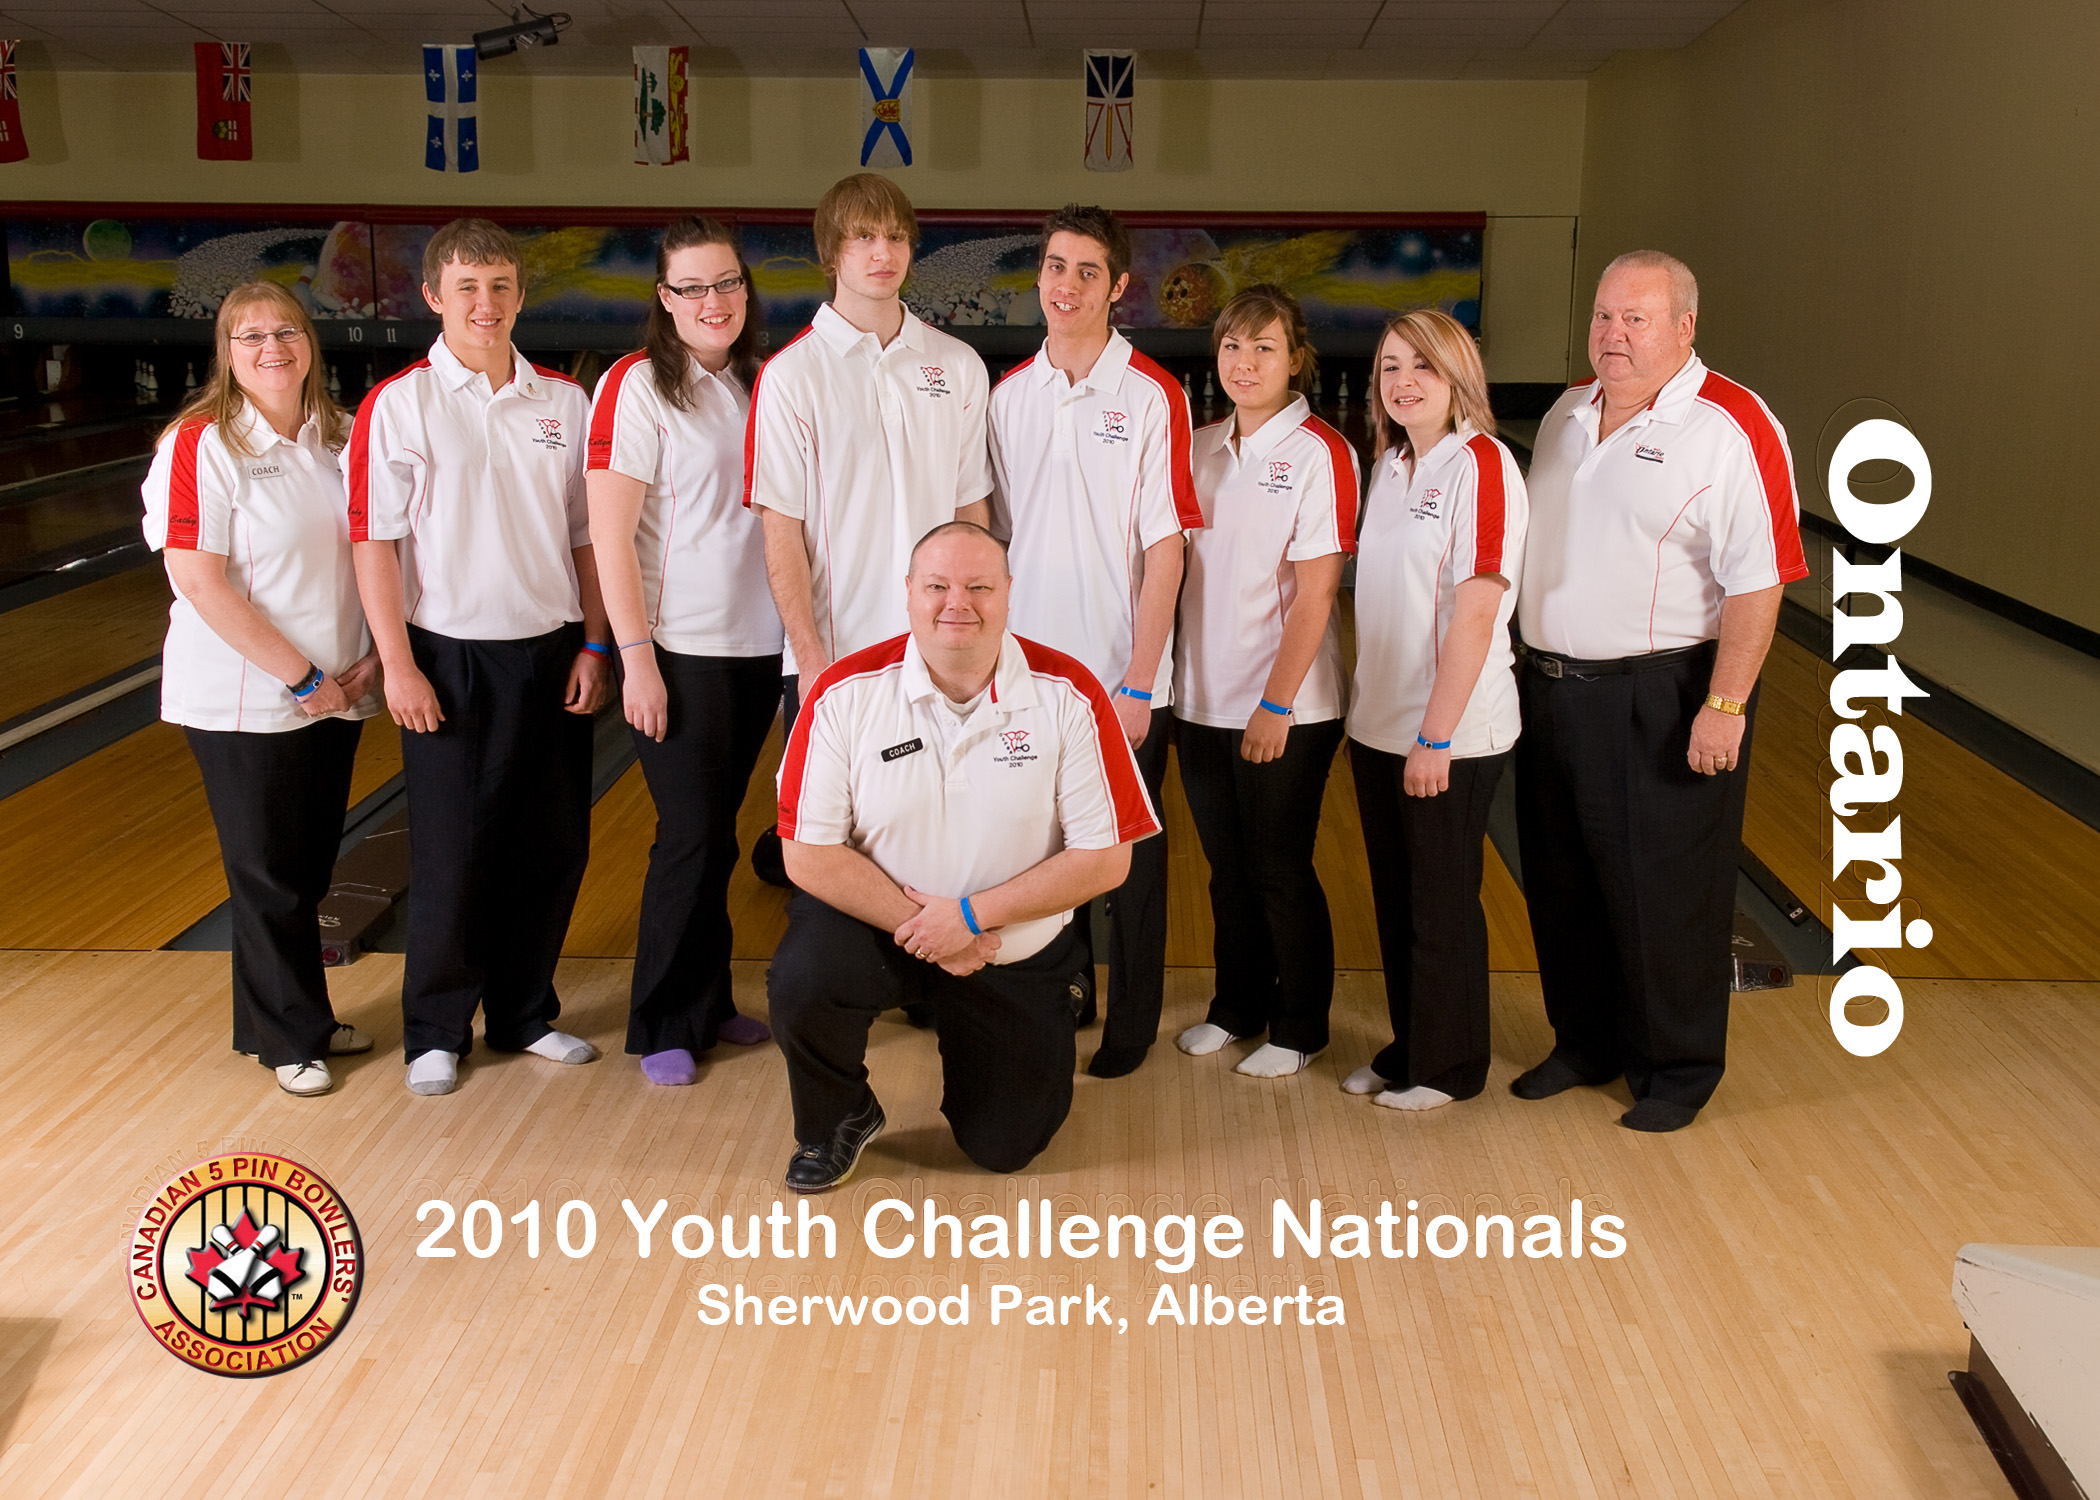 Canadian 5-Pin Youth Challenge